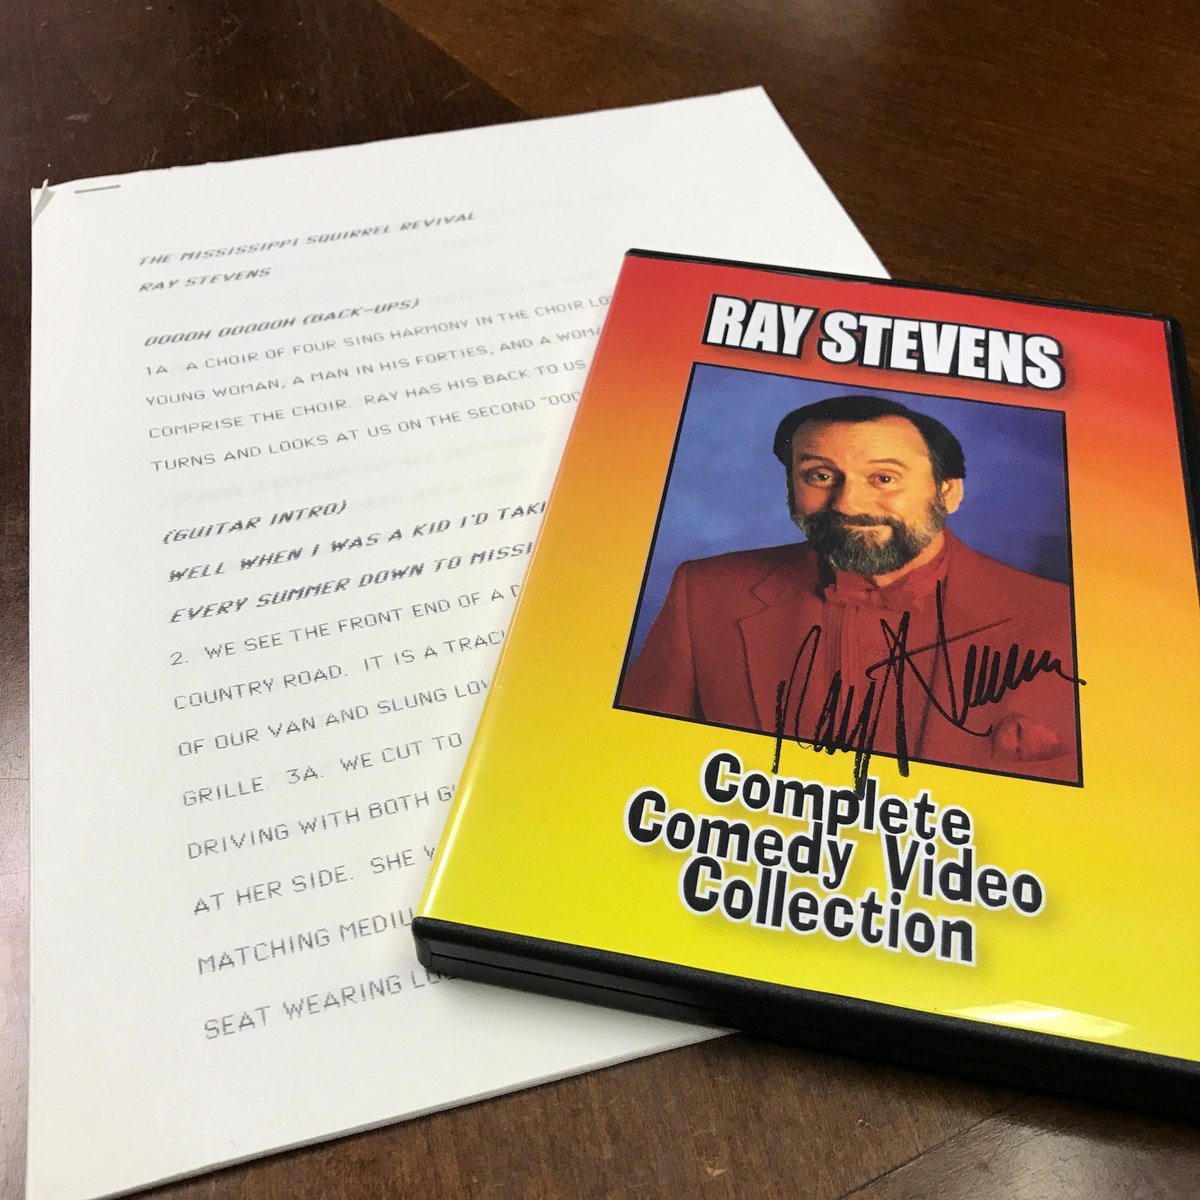 video collection dvd both autographed by ray stevens only 2 weeks left to make this item yours httpsbitly2pfkuhw pictwittercomris7mbdeay - Ray Stevens Christmas Songs